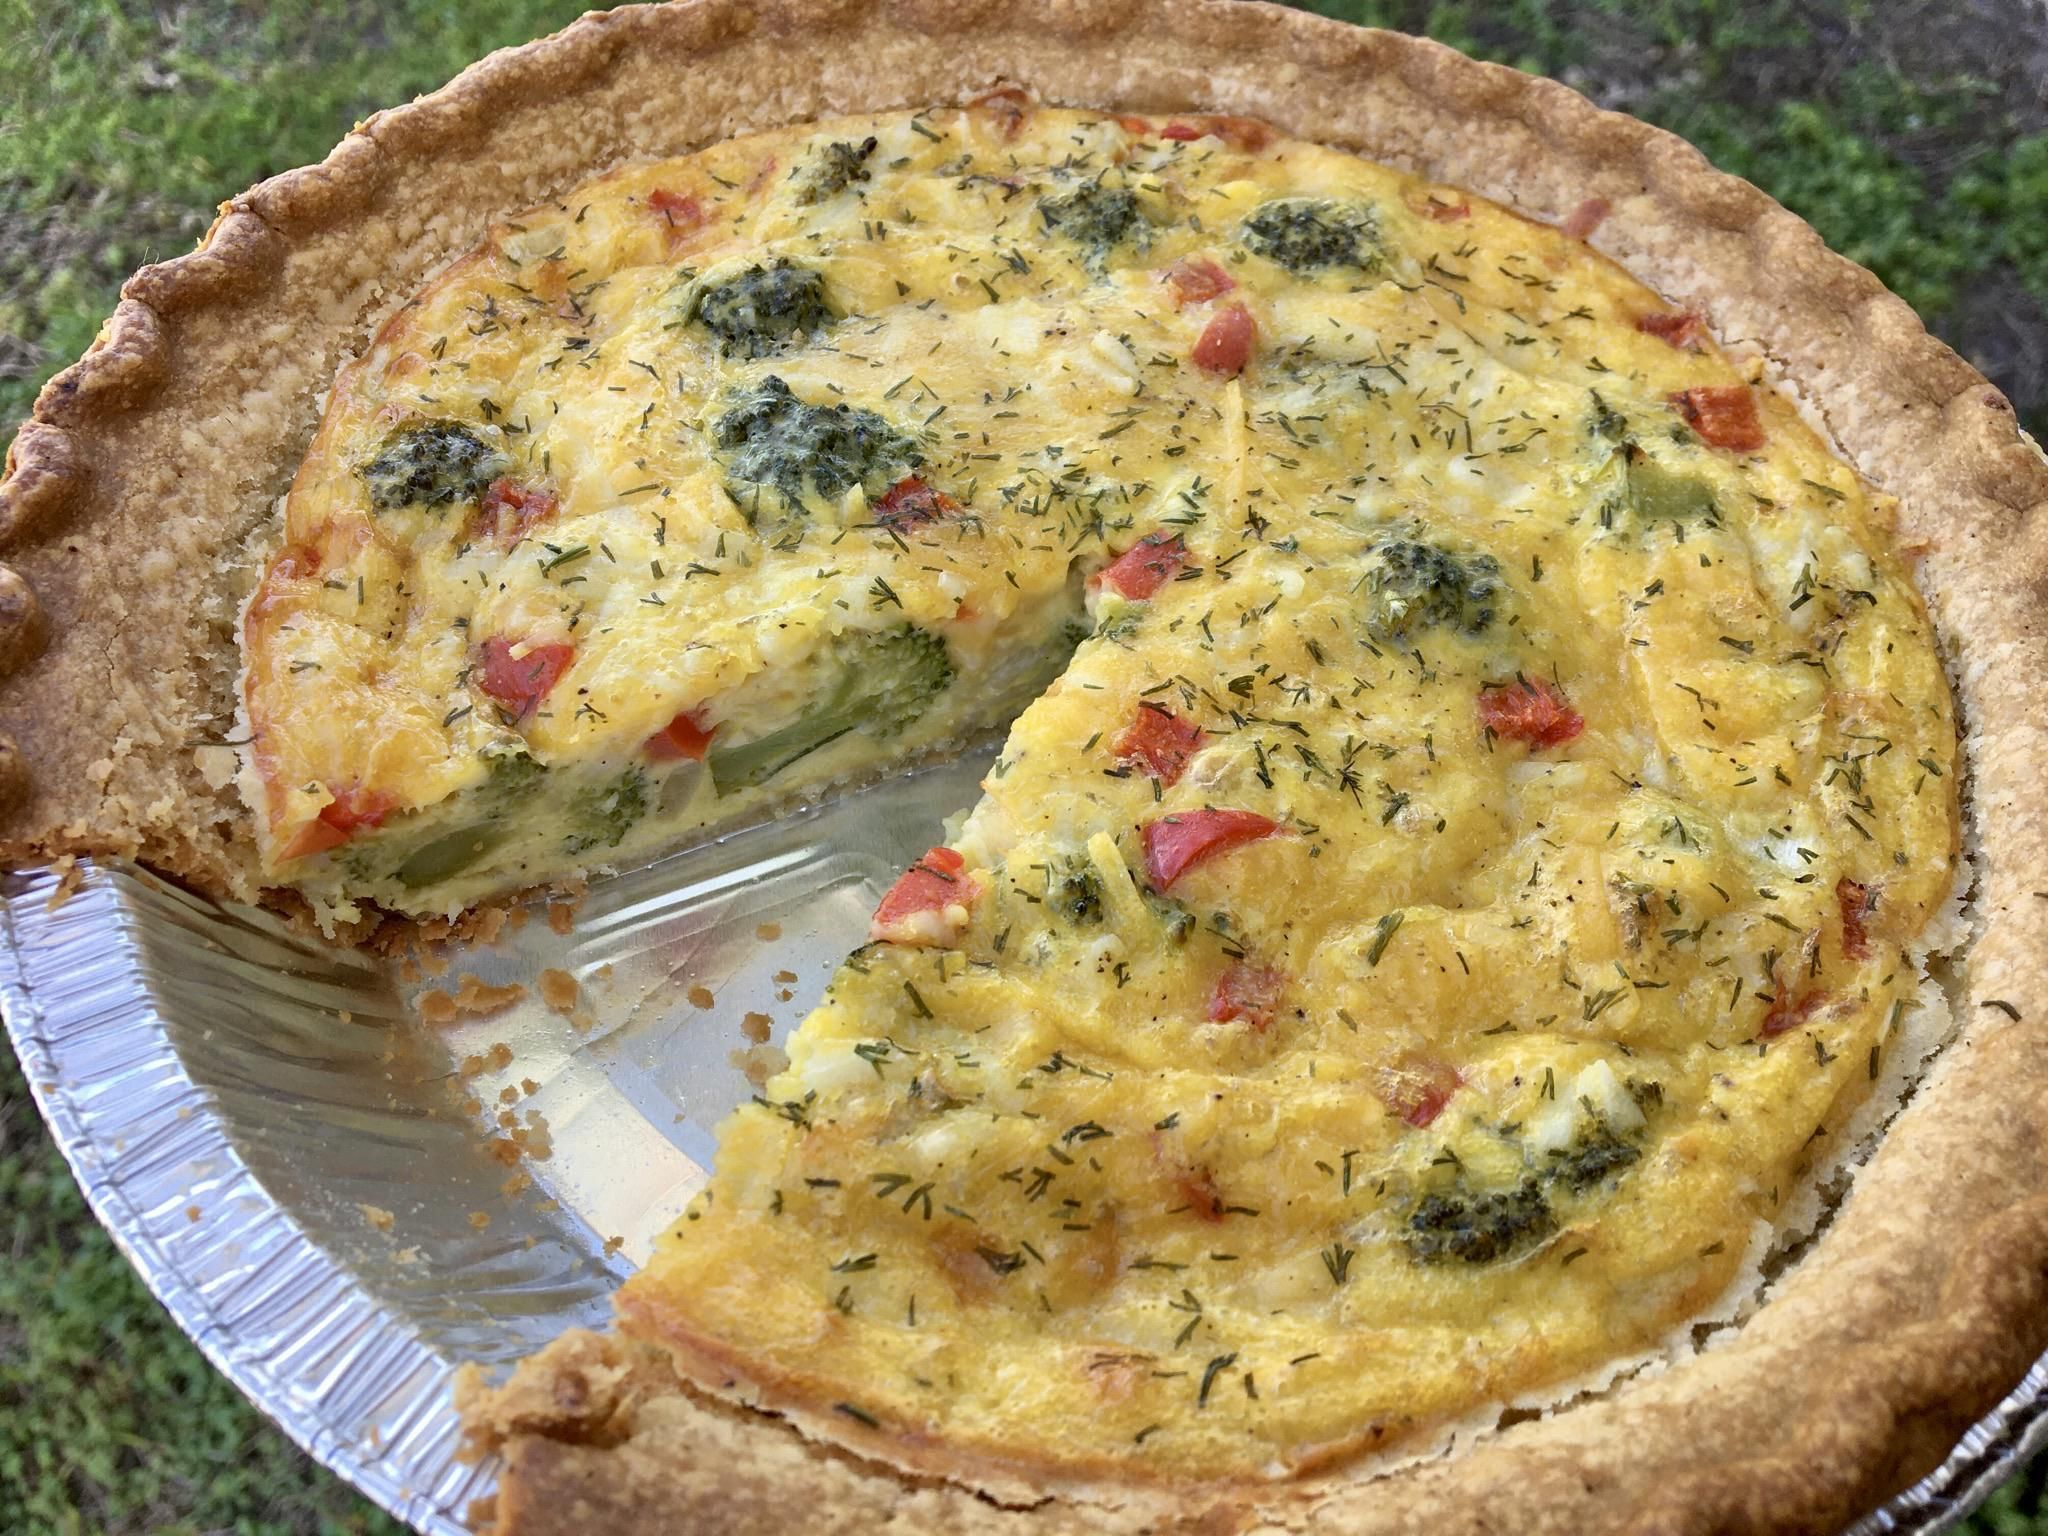 This Quiche Made With 3 99 Just Egg Reminds Me Of My Pre Vegan Days So Good Https Ift Tt 2uosc2c In 2020 Vegan Quiche Clean Eating Vegan Vegan Recipes